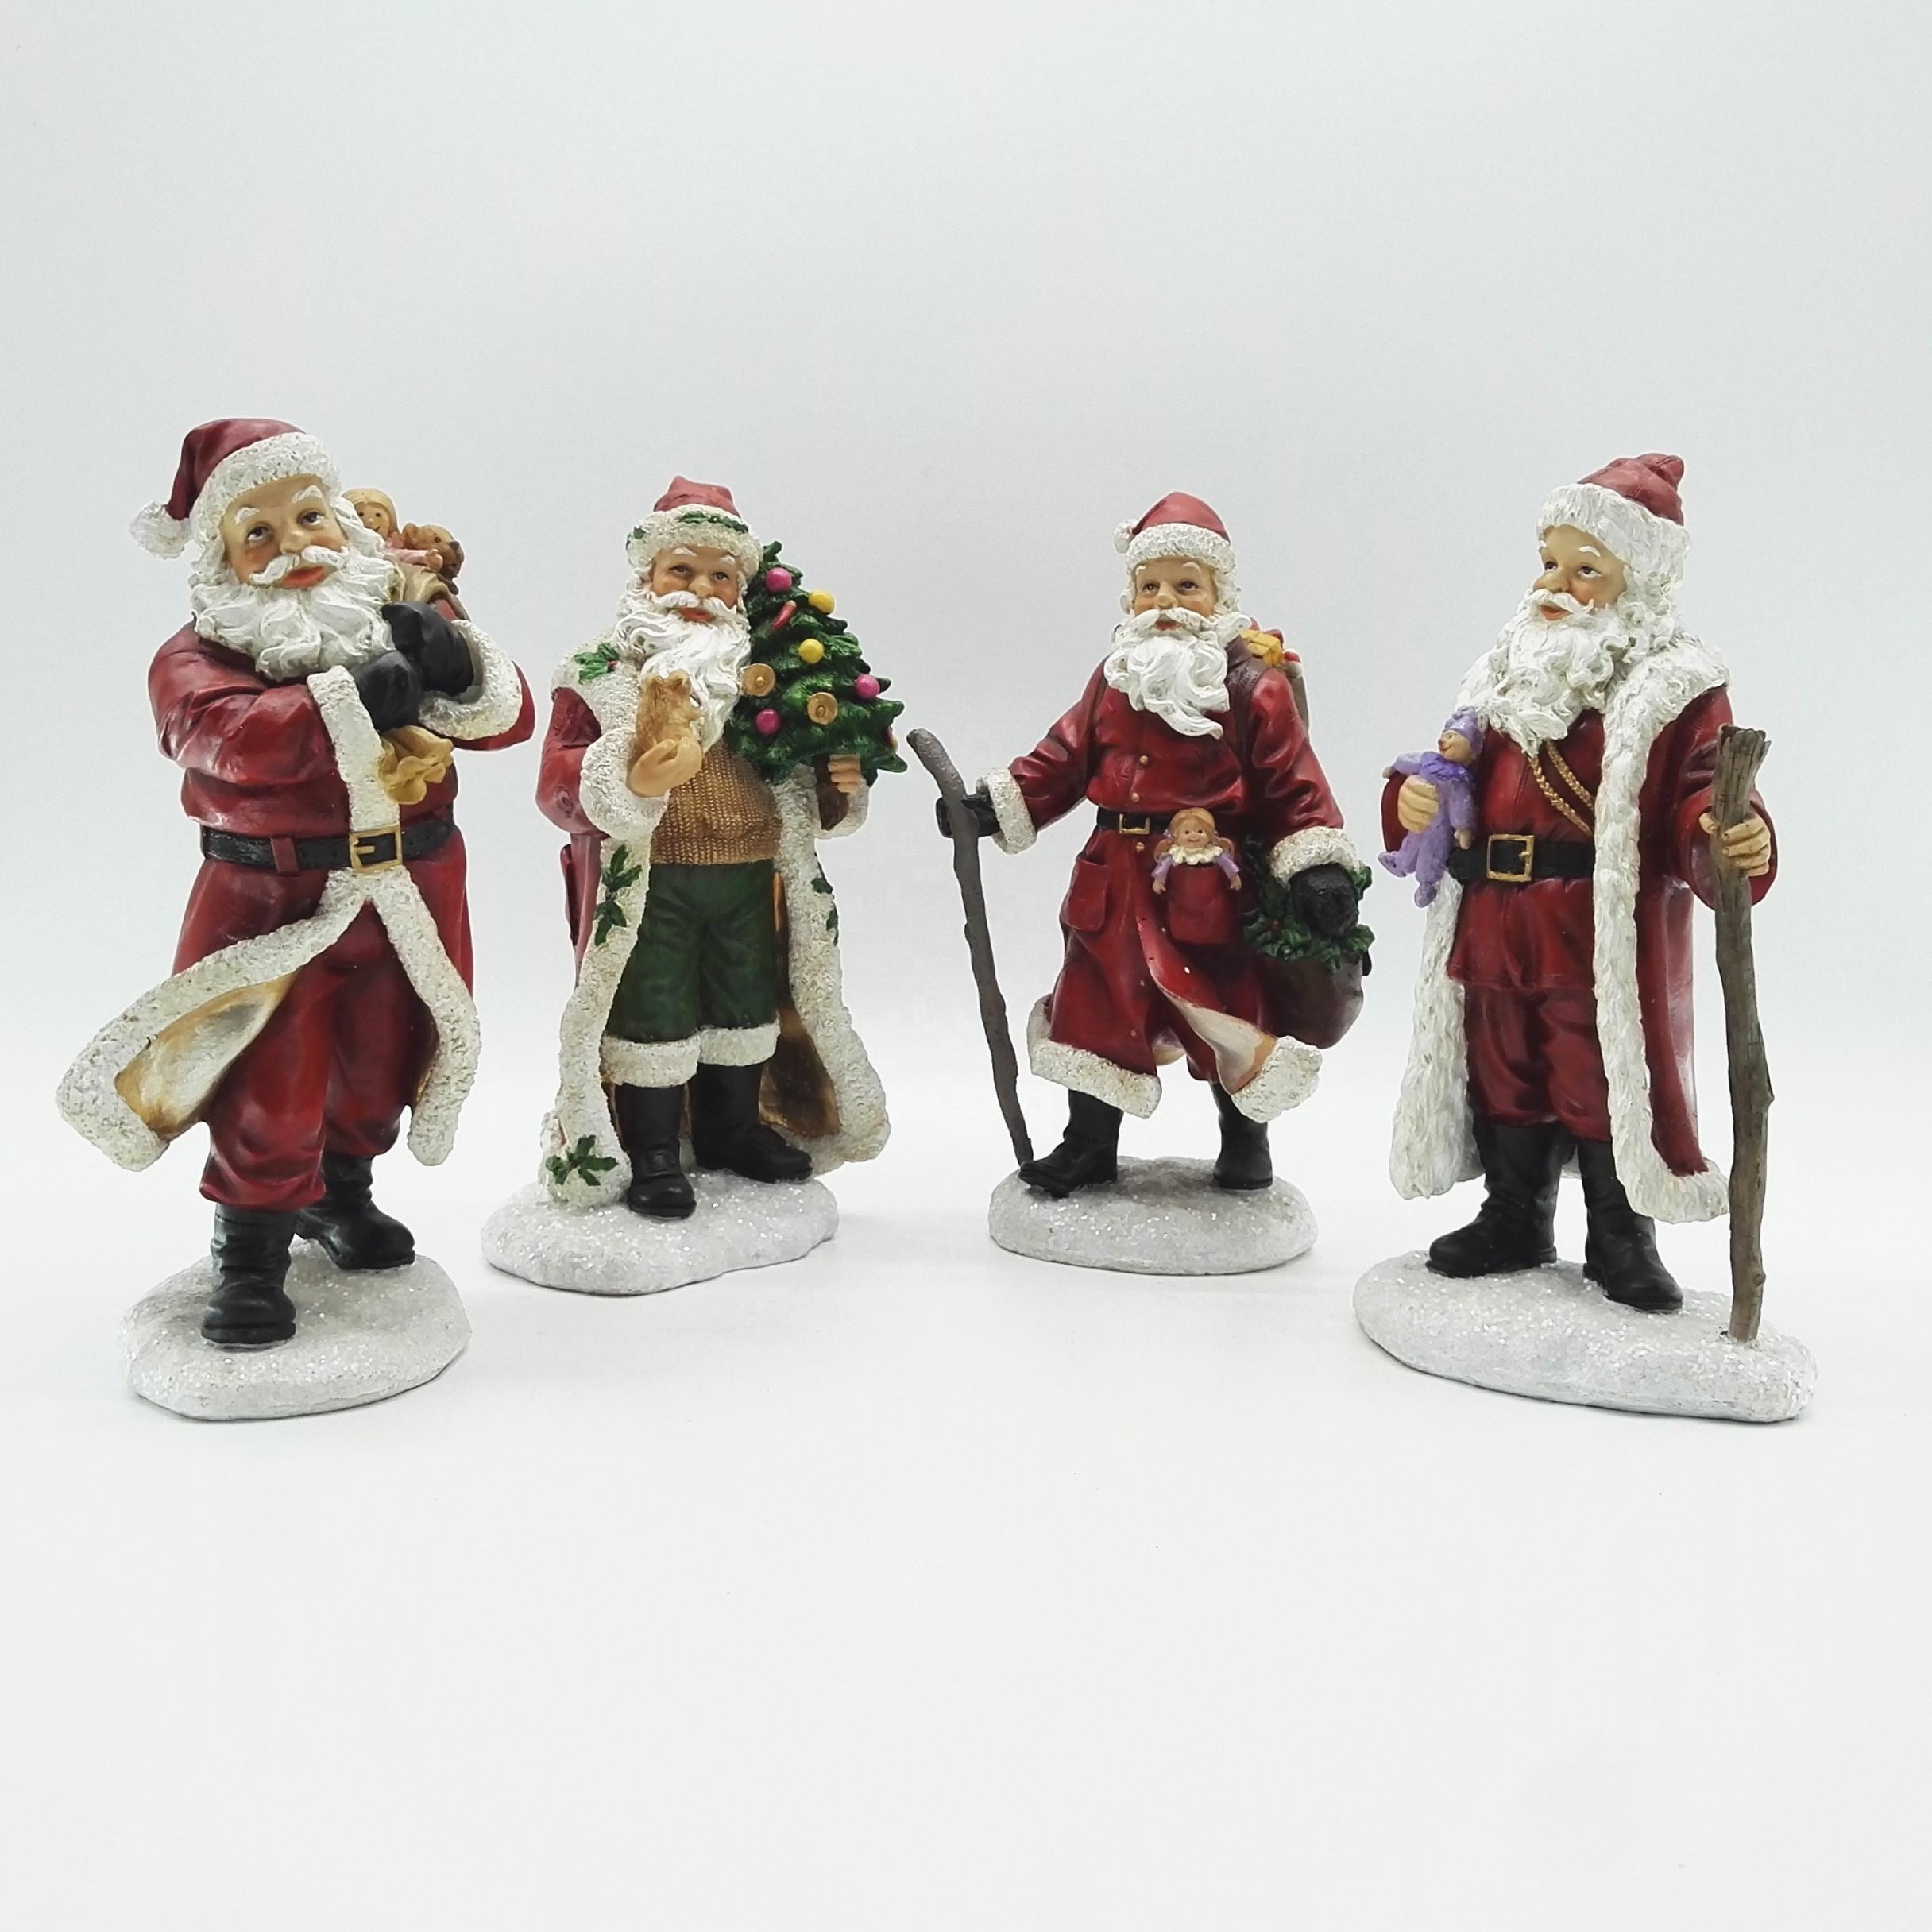 Nativity Traditional Living Room Decor Supplies Holiday Red Antique Resin Stone Christmas 2020 Santa Claus Figurines Ornaments